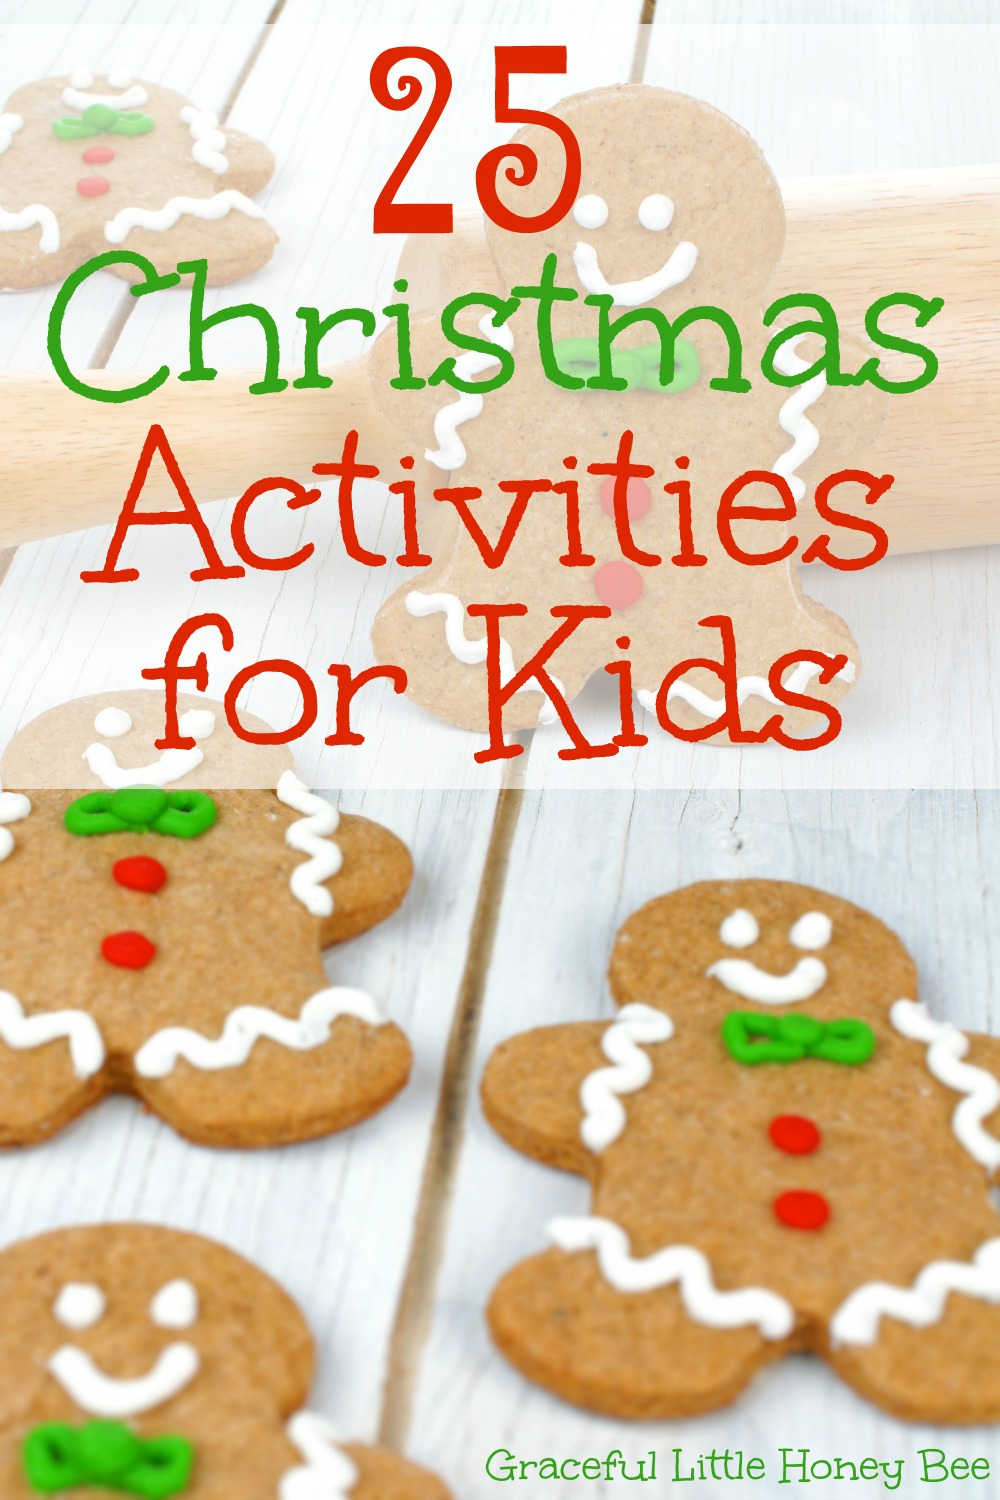 25 Christmas Activities for Kids - Graceful Little Honey Bee